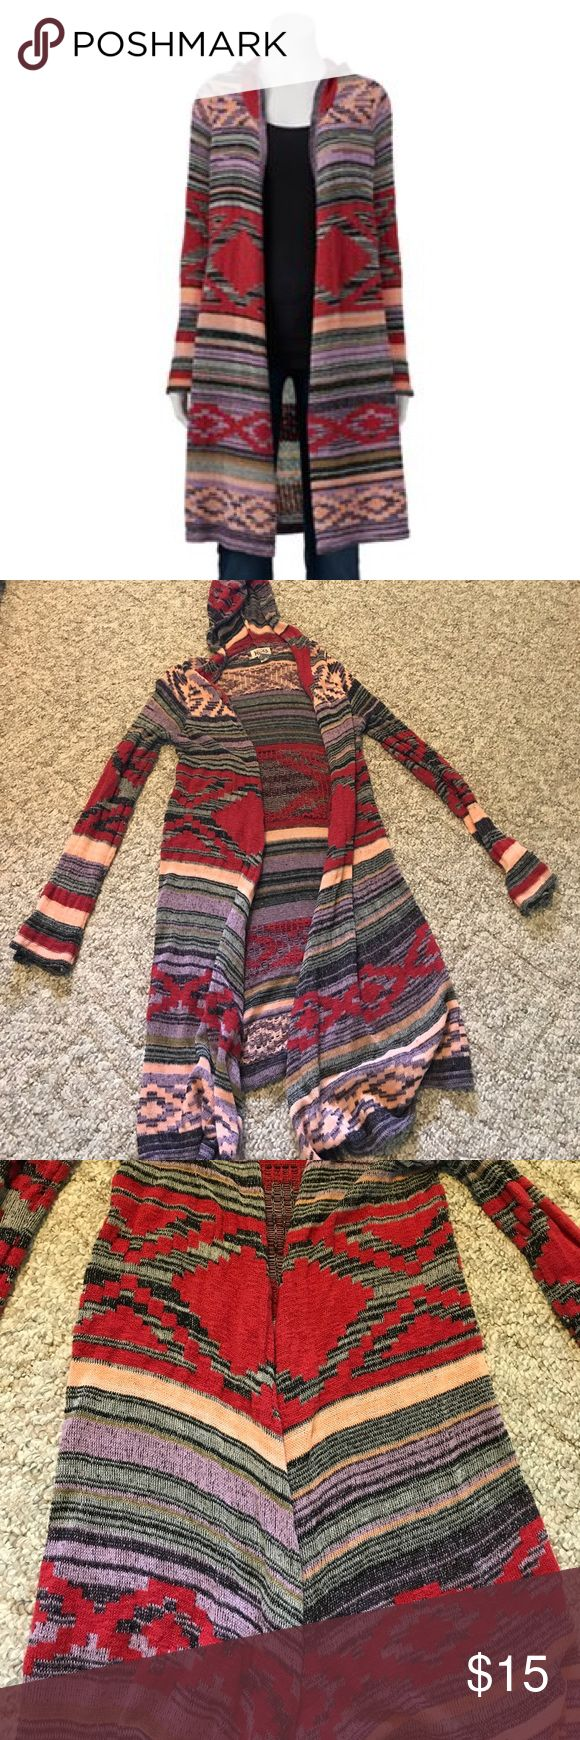 Long MUDD CARDIGAN Medium long cardigan. Tribal print type pattern. Hooded with love sleeves. Perfect for fall with jeans or leggings and boots 😊 Mudd Sweaters Cardigans